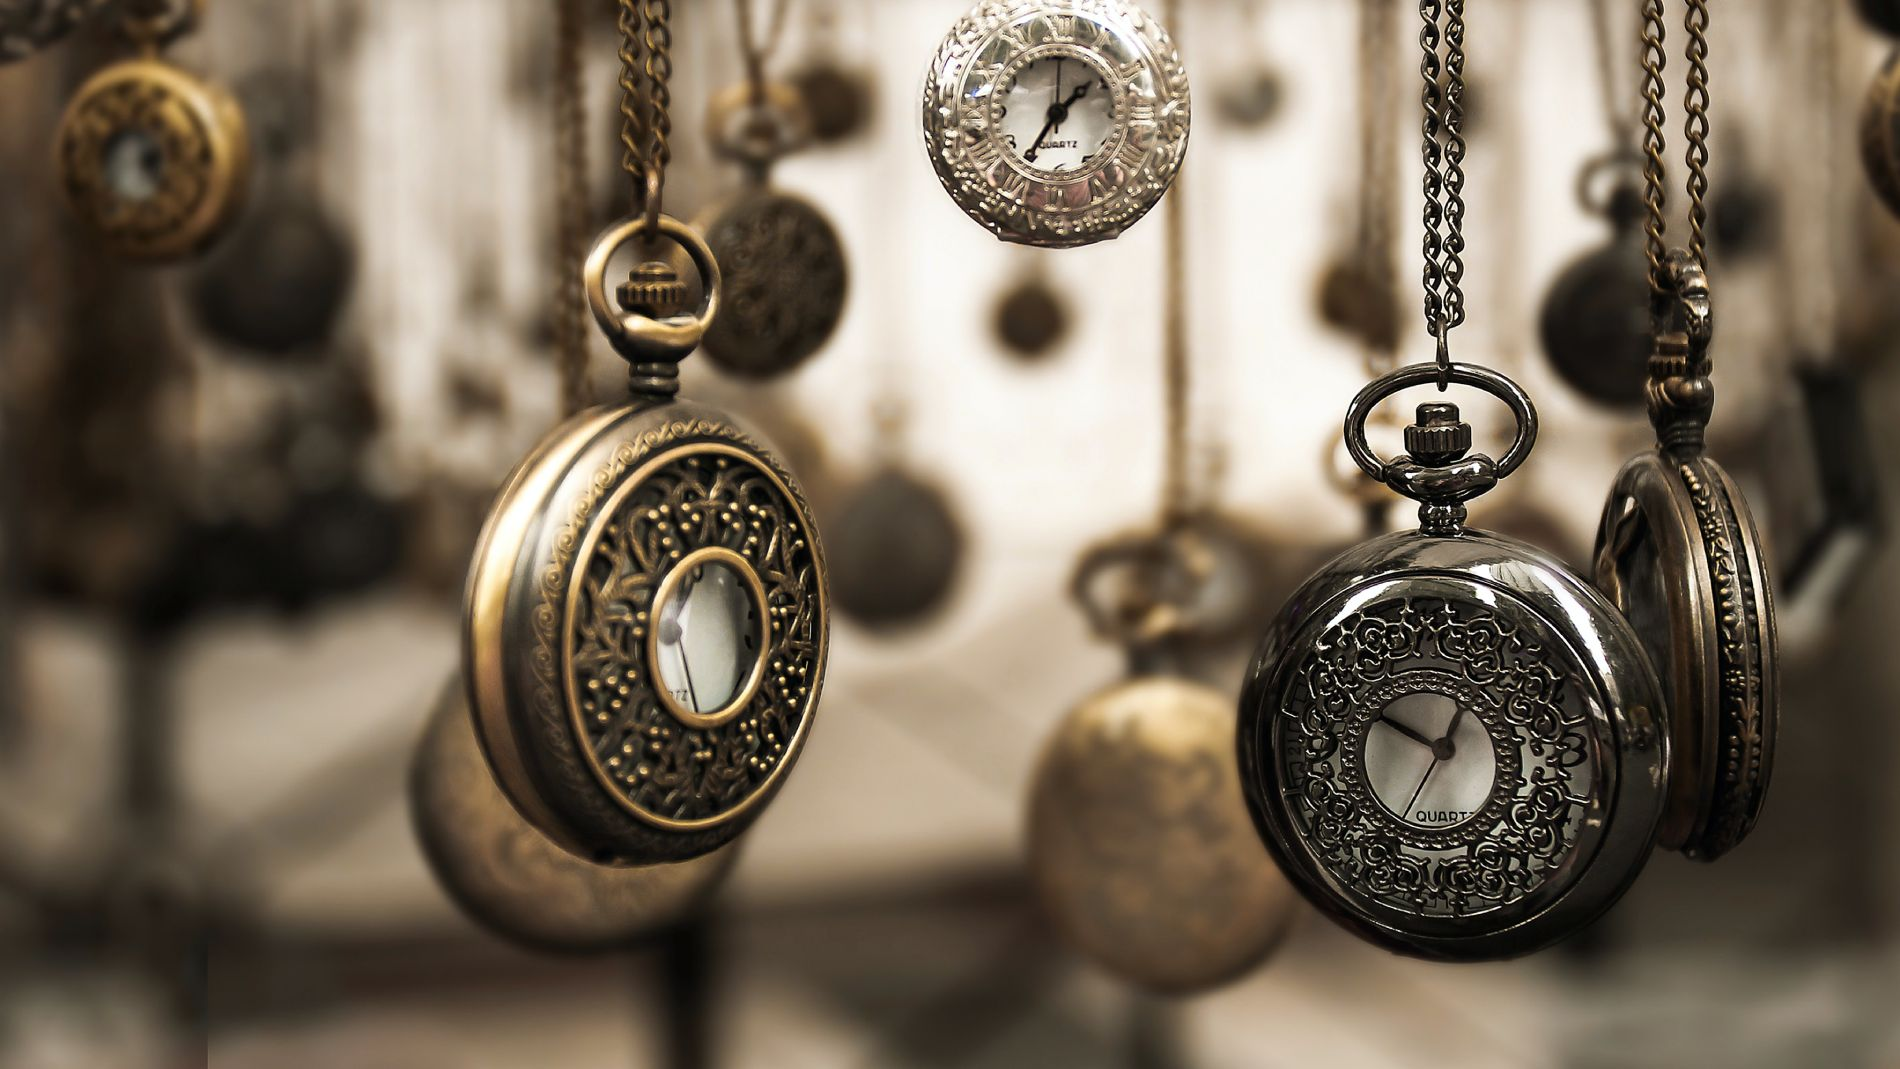 Time & Glam - Luxury Concierge, Lifestyle Management & Hospitality Services in Barcelona